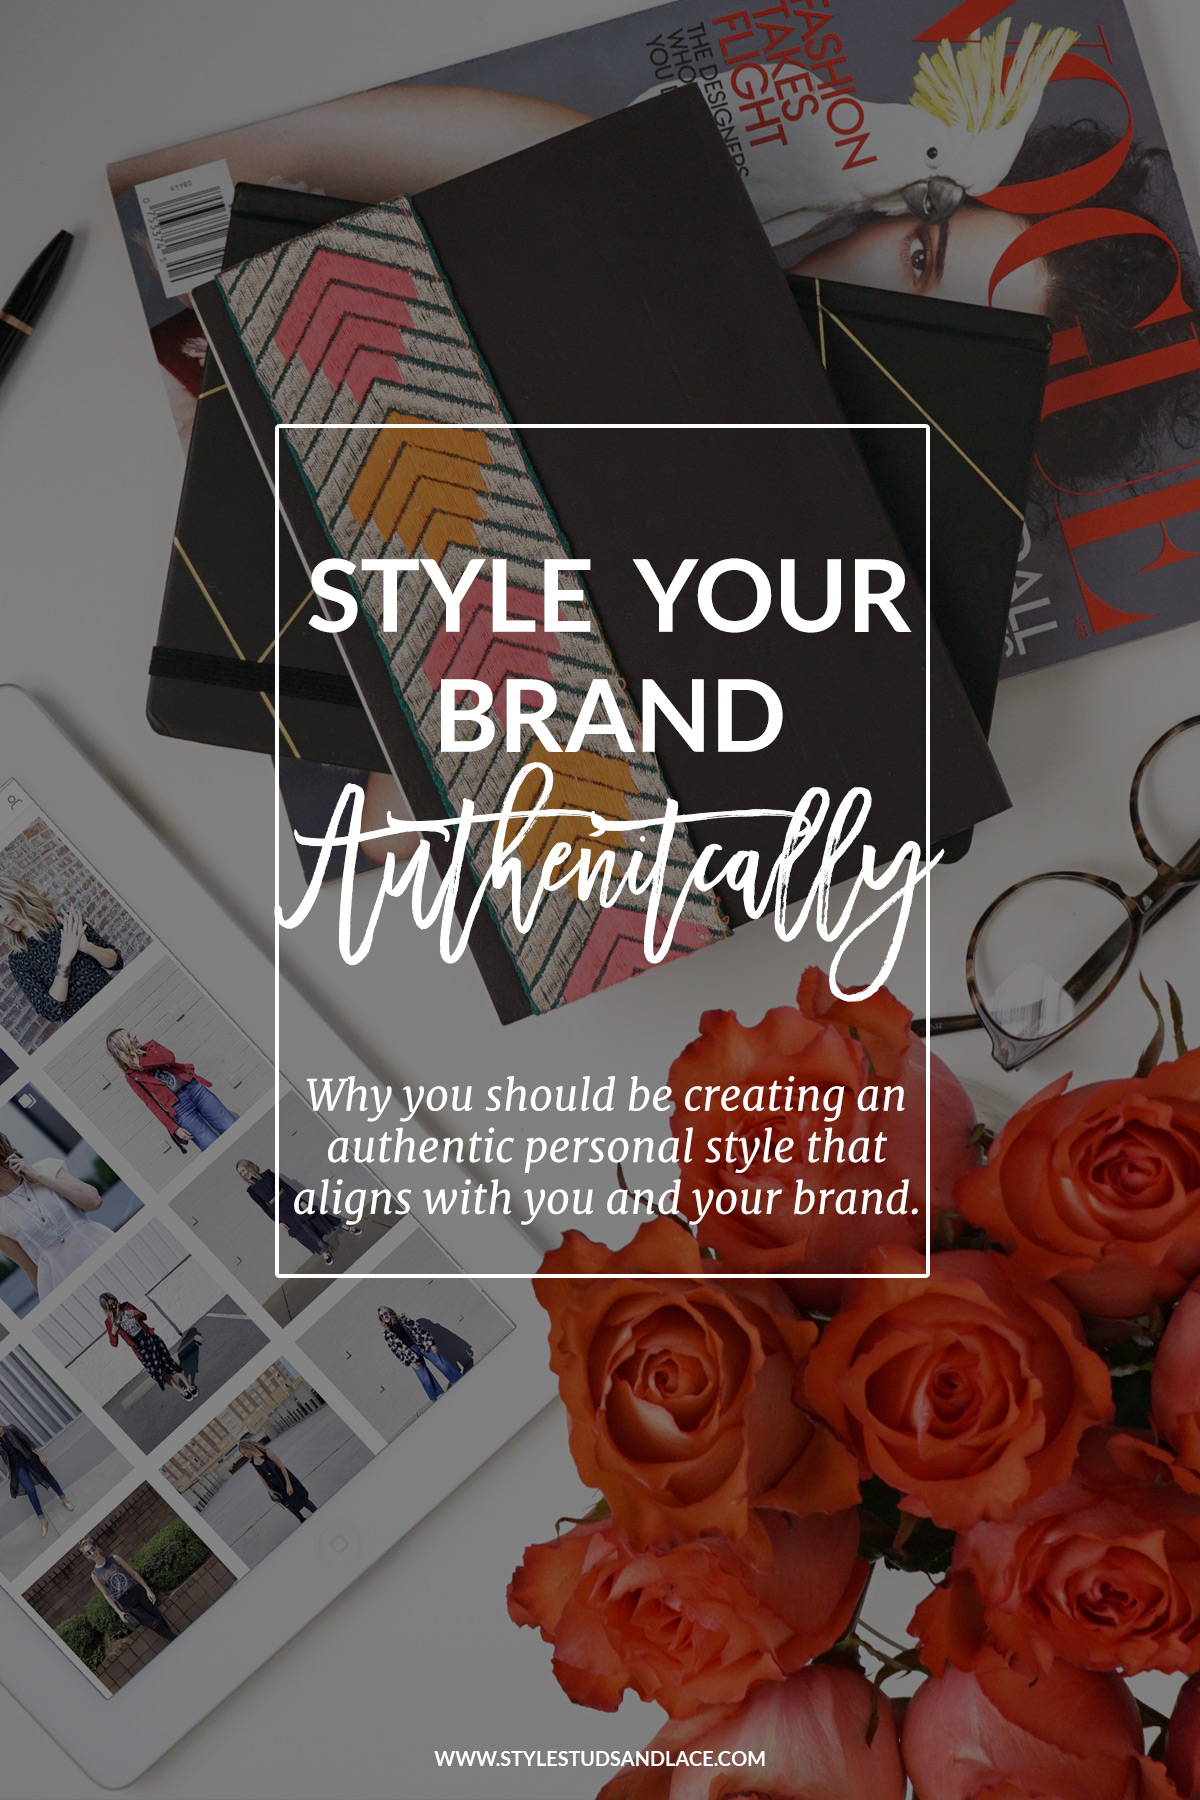 As an #entrepreneur you are committed to building a strong, authentic personal brand that visually represents your business and your ethos, but it doesn't matter how cohesive that business brand is; if you don't consider your personal style and authentically align this to you and your business brand then you are seriously hindering your ability to connect to your audience.